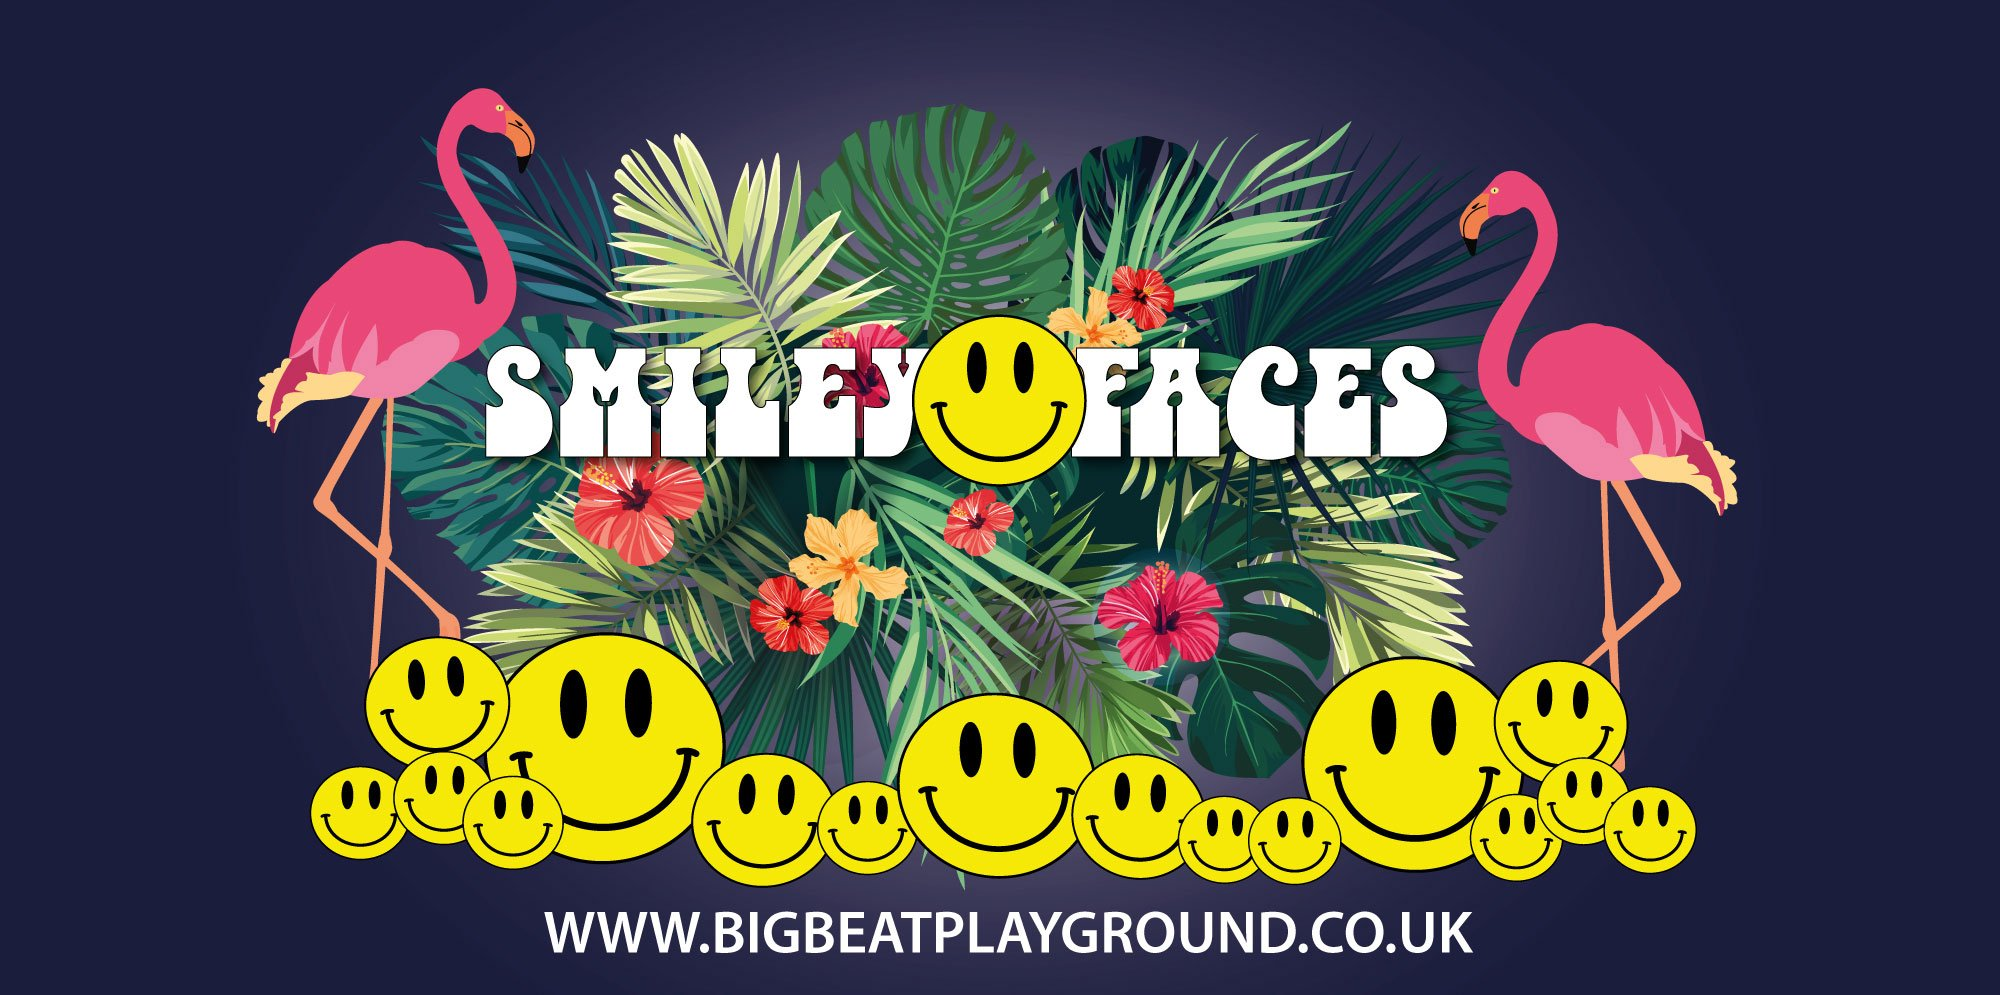 Big Beat Playground: The words 'Smiley Faces' surrounded by two flamingoes, leaves and a multitude of Smiley Faces